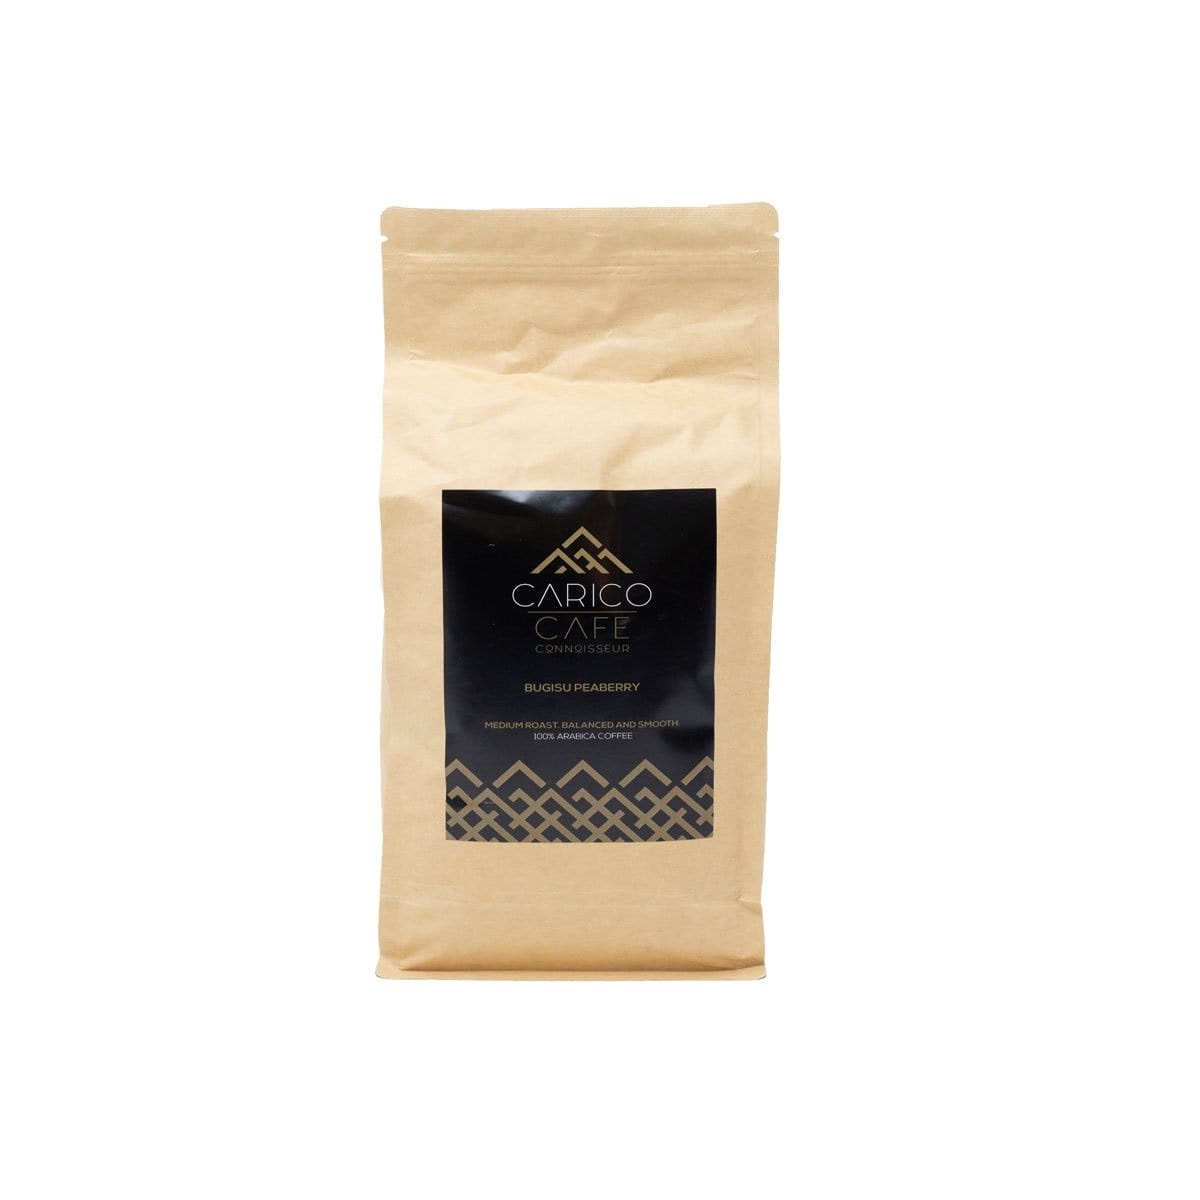 Carico Cafe Bugisu Peaberry ground - 250grm